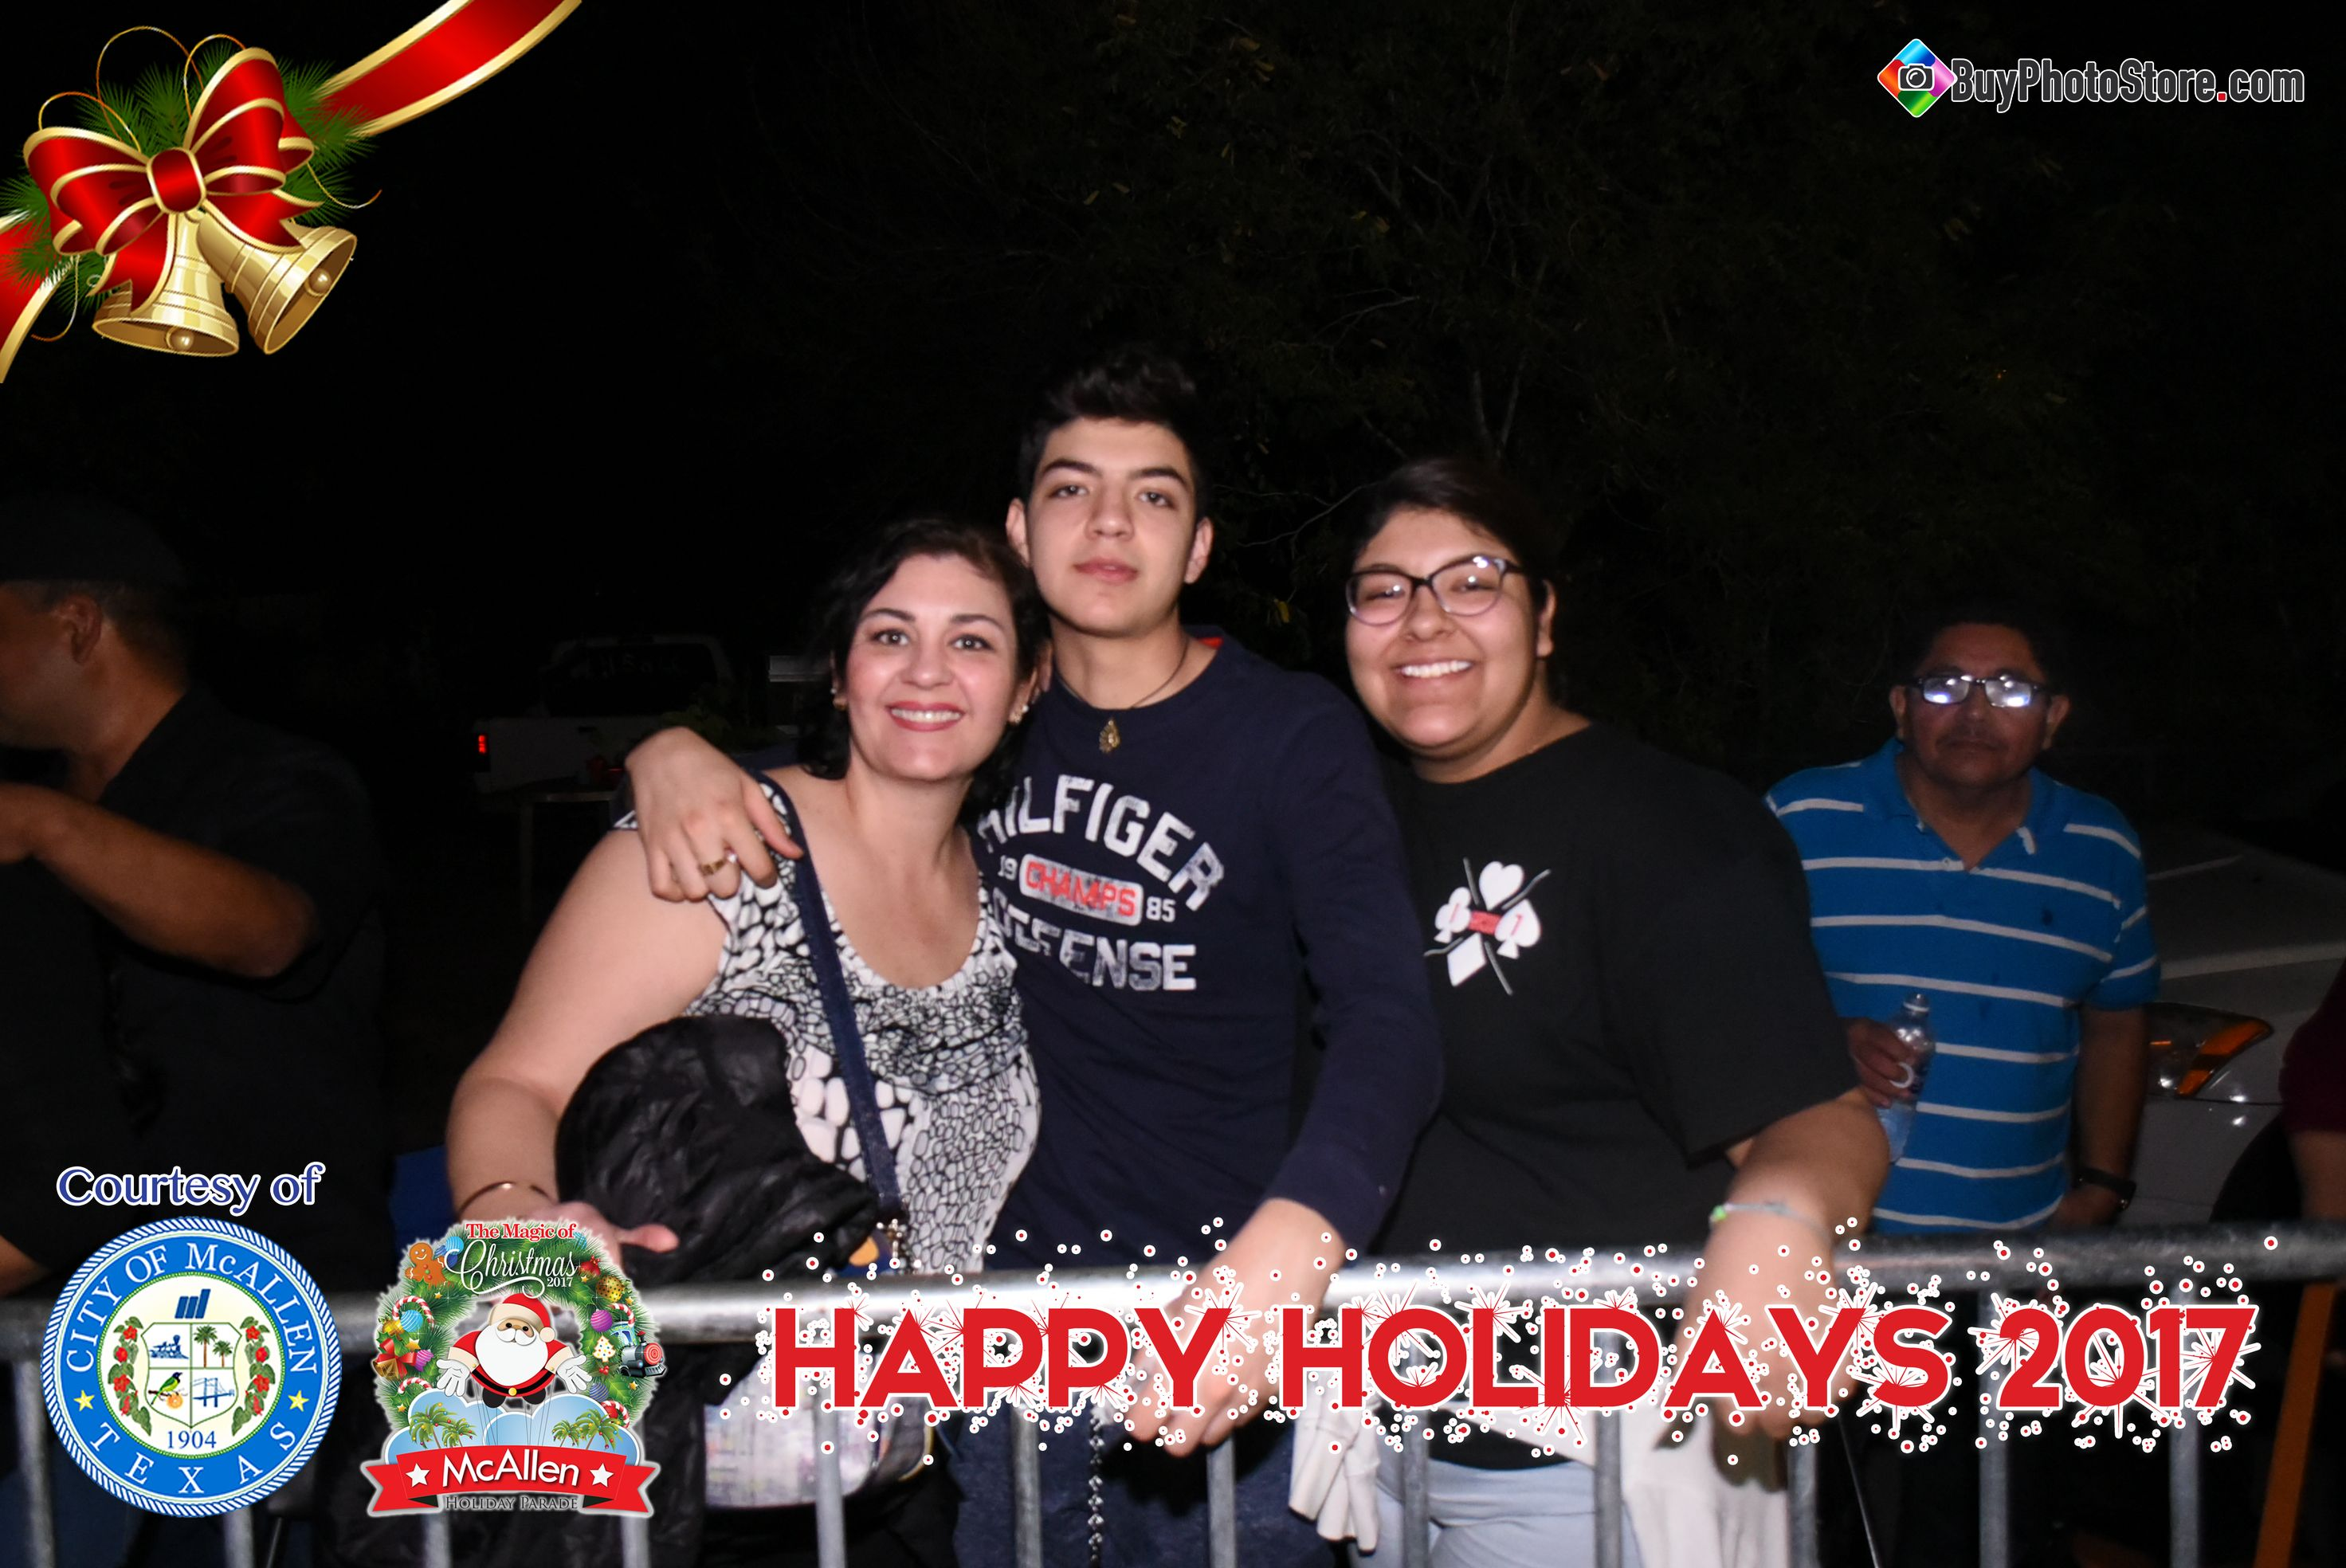 McAllen Holiday Parade 2017 – Part VI